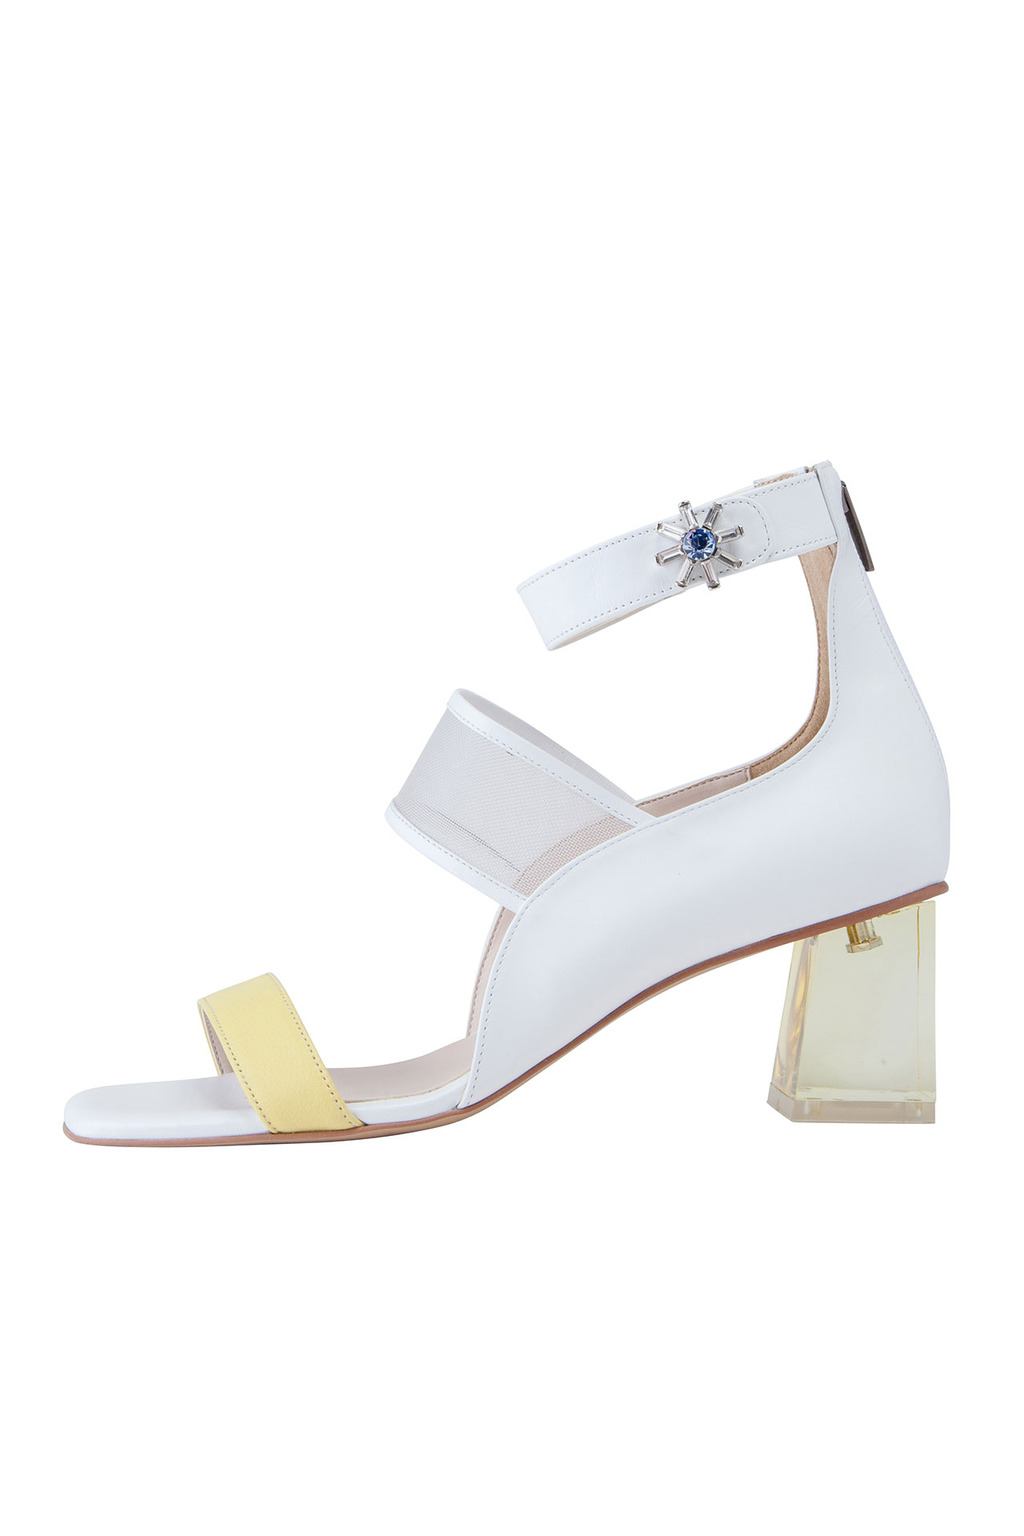 DORATORE Luce White - Women's Shoes : Republic of Korea